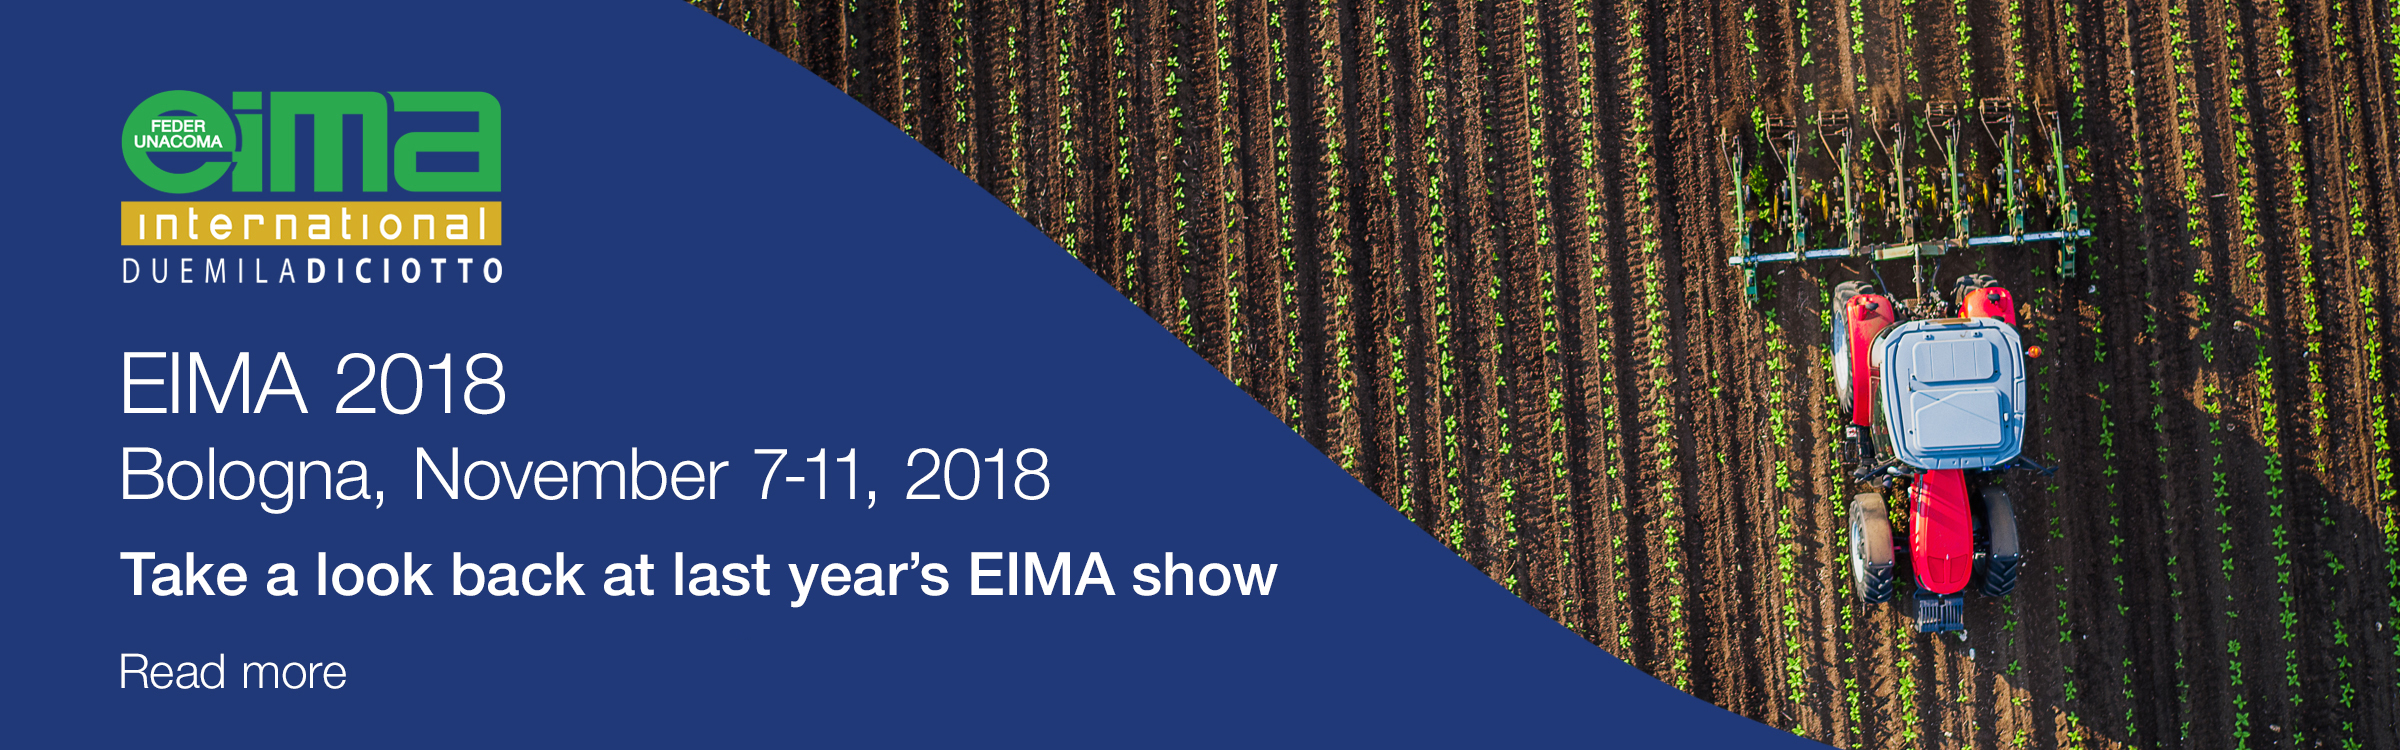 EIMA 2018 - Read more